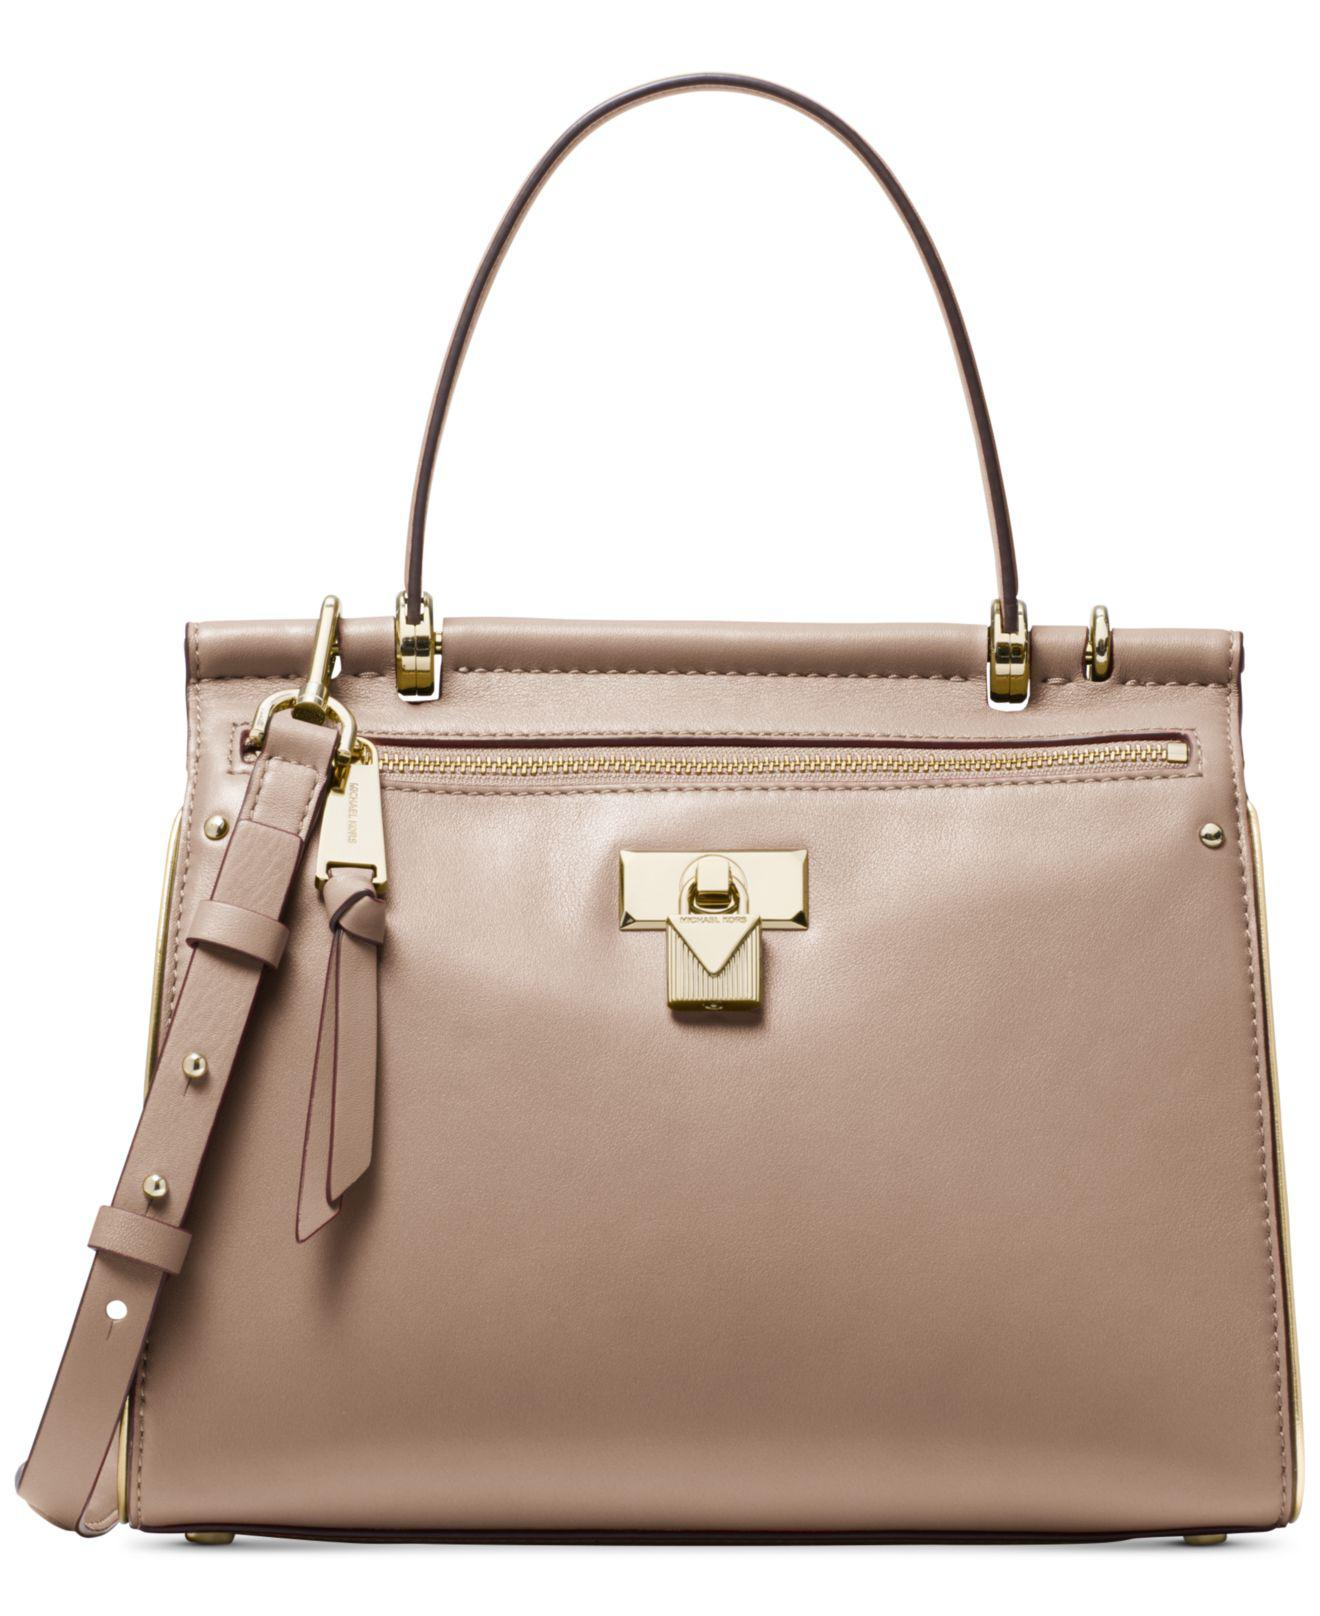 6f6f0a8b8d38 Michael Kors. Women s Michael Jasmine Polished Leather Top Handle Satchel